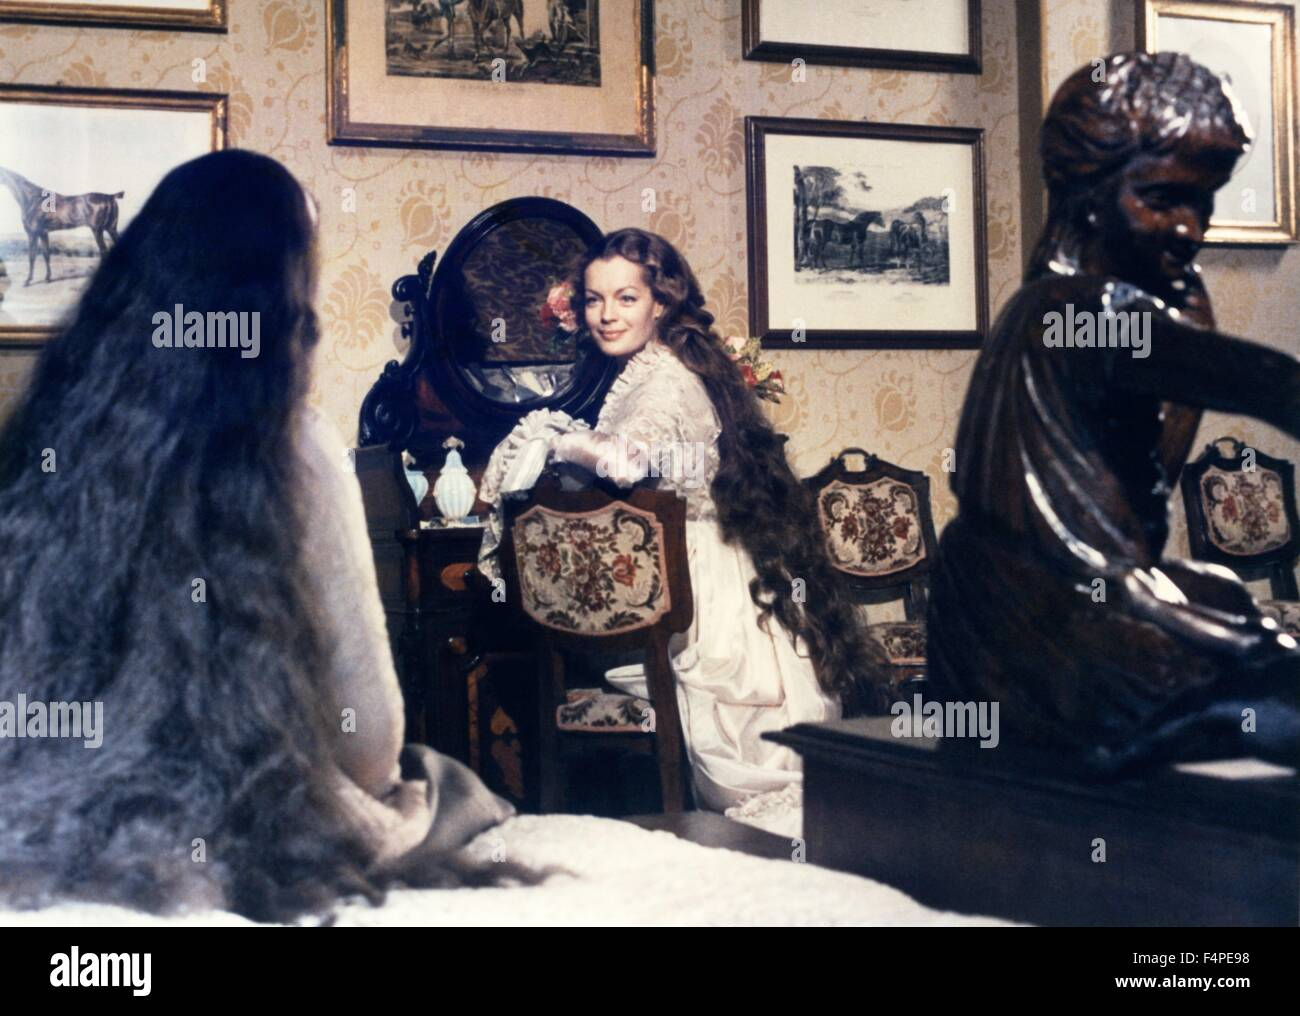 Romy Schneider / Ludwig : The Mad King of Bavaria / 1972 directed by Luchino Visconti - Stock Image